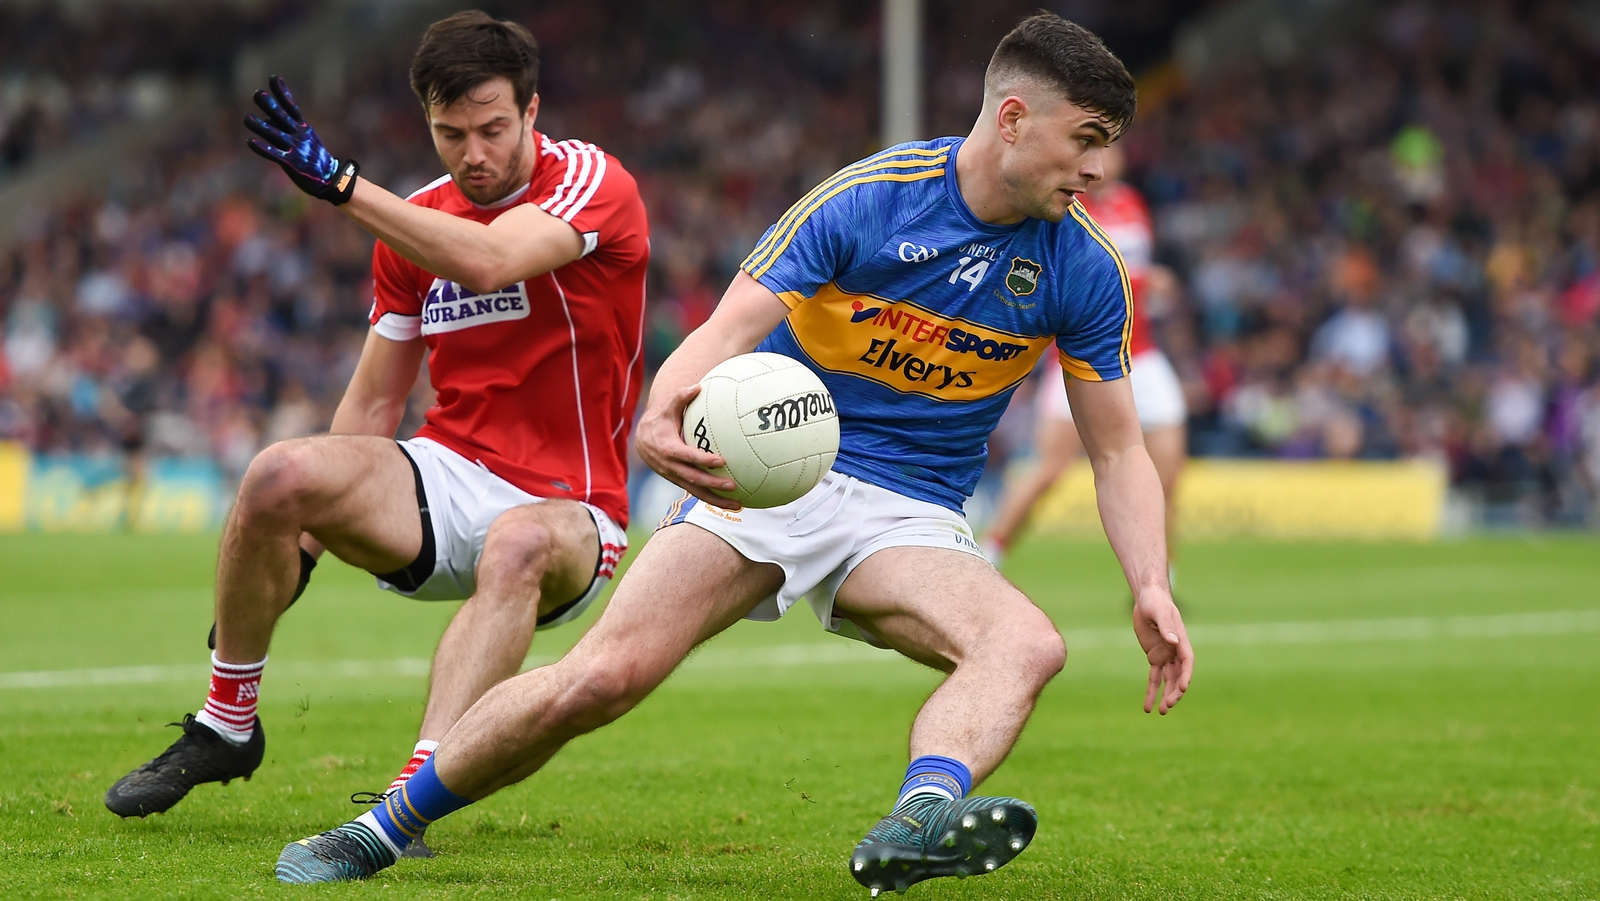 Image - Michael Quinlivan in action for Tipperary during this year's Championship